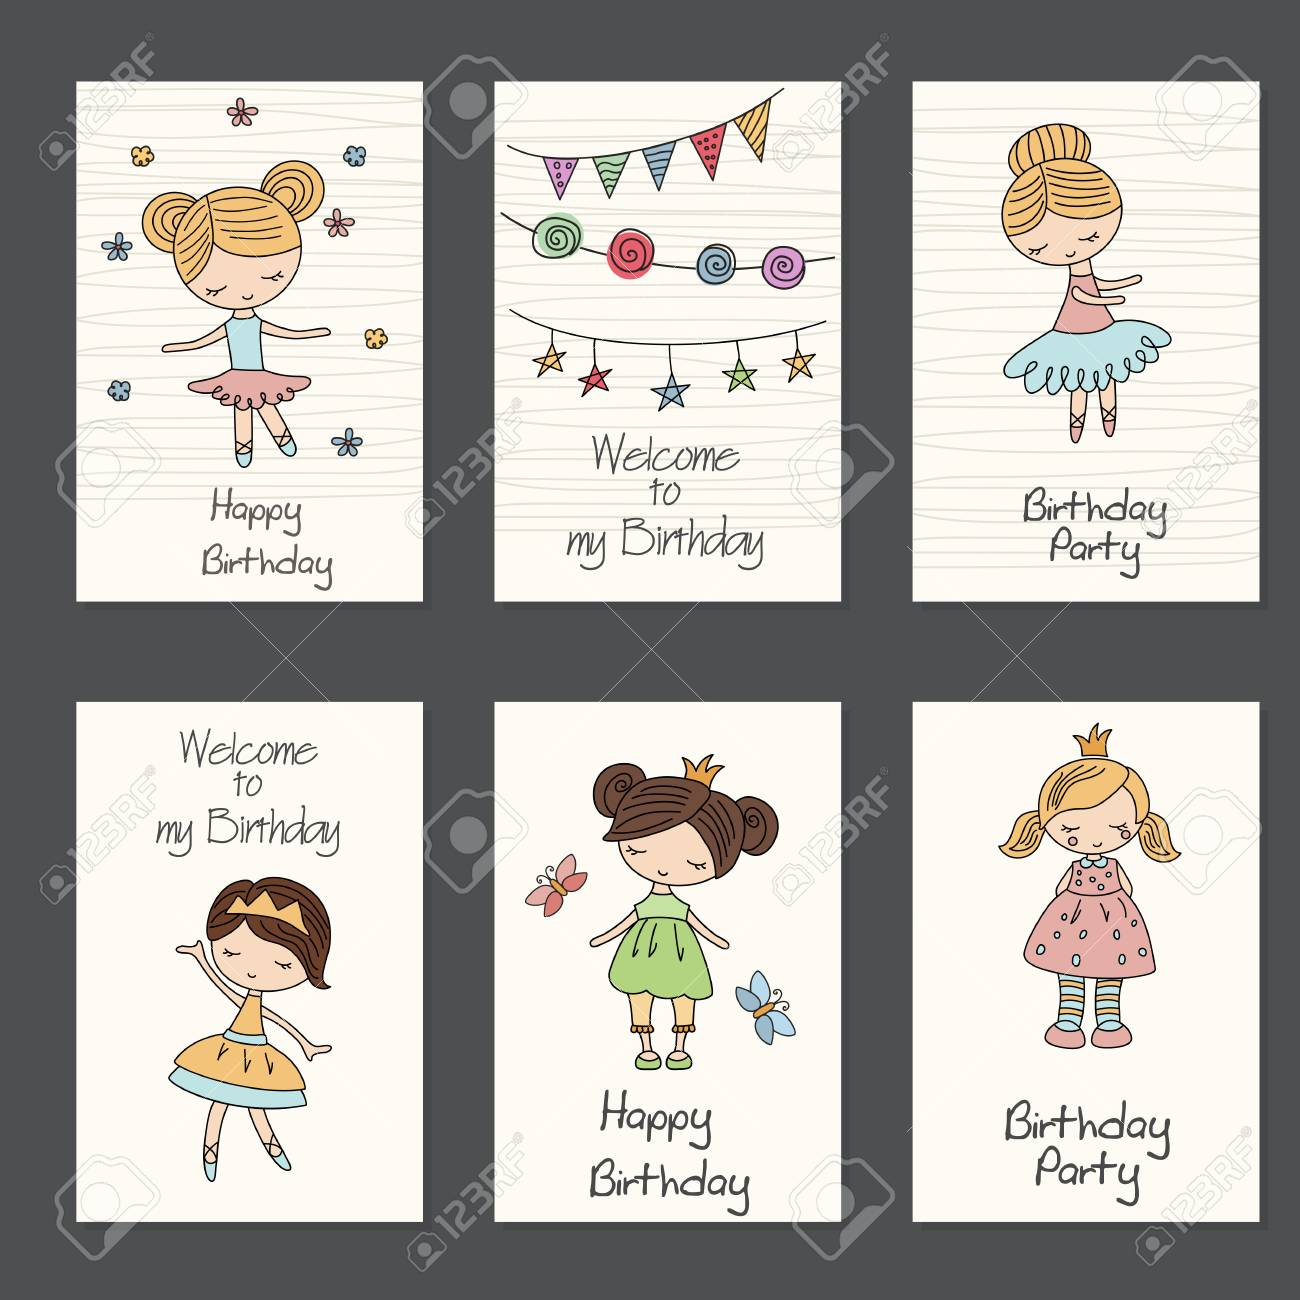 Set Of Beautiful Birthday Invitation Cards Decorated With Cartoon